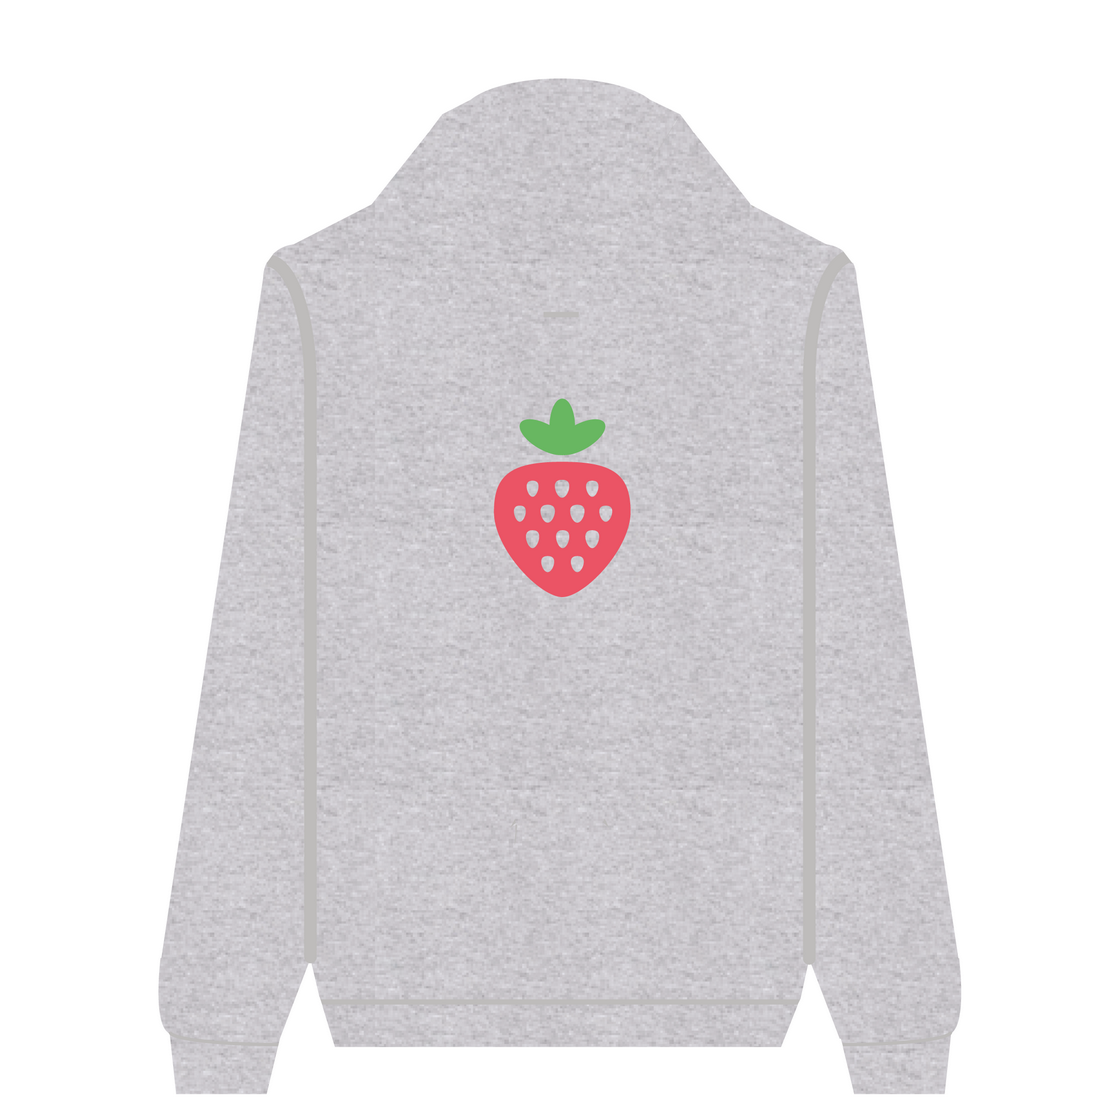 Full Zip Hoodie Strawberry | Wuzzee